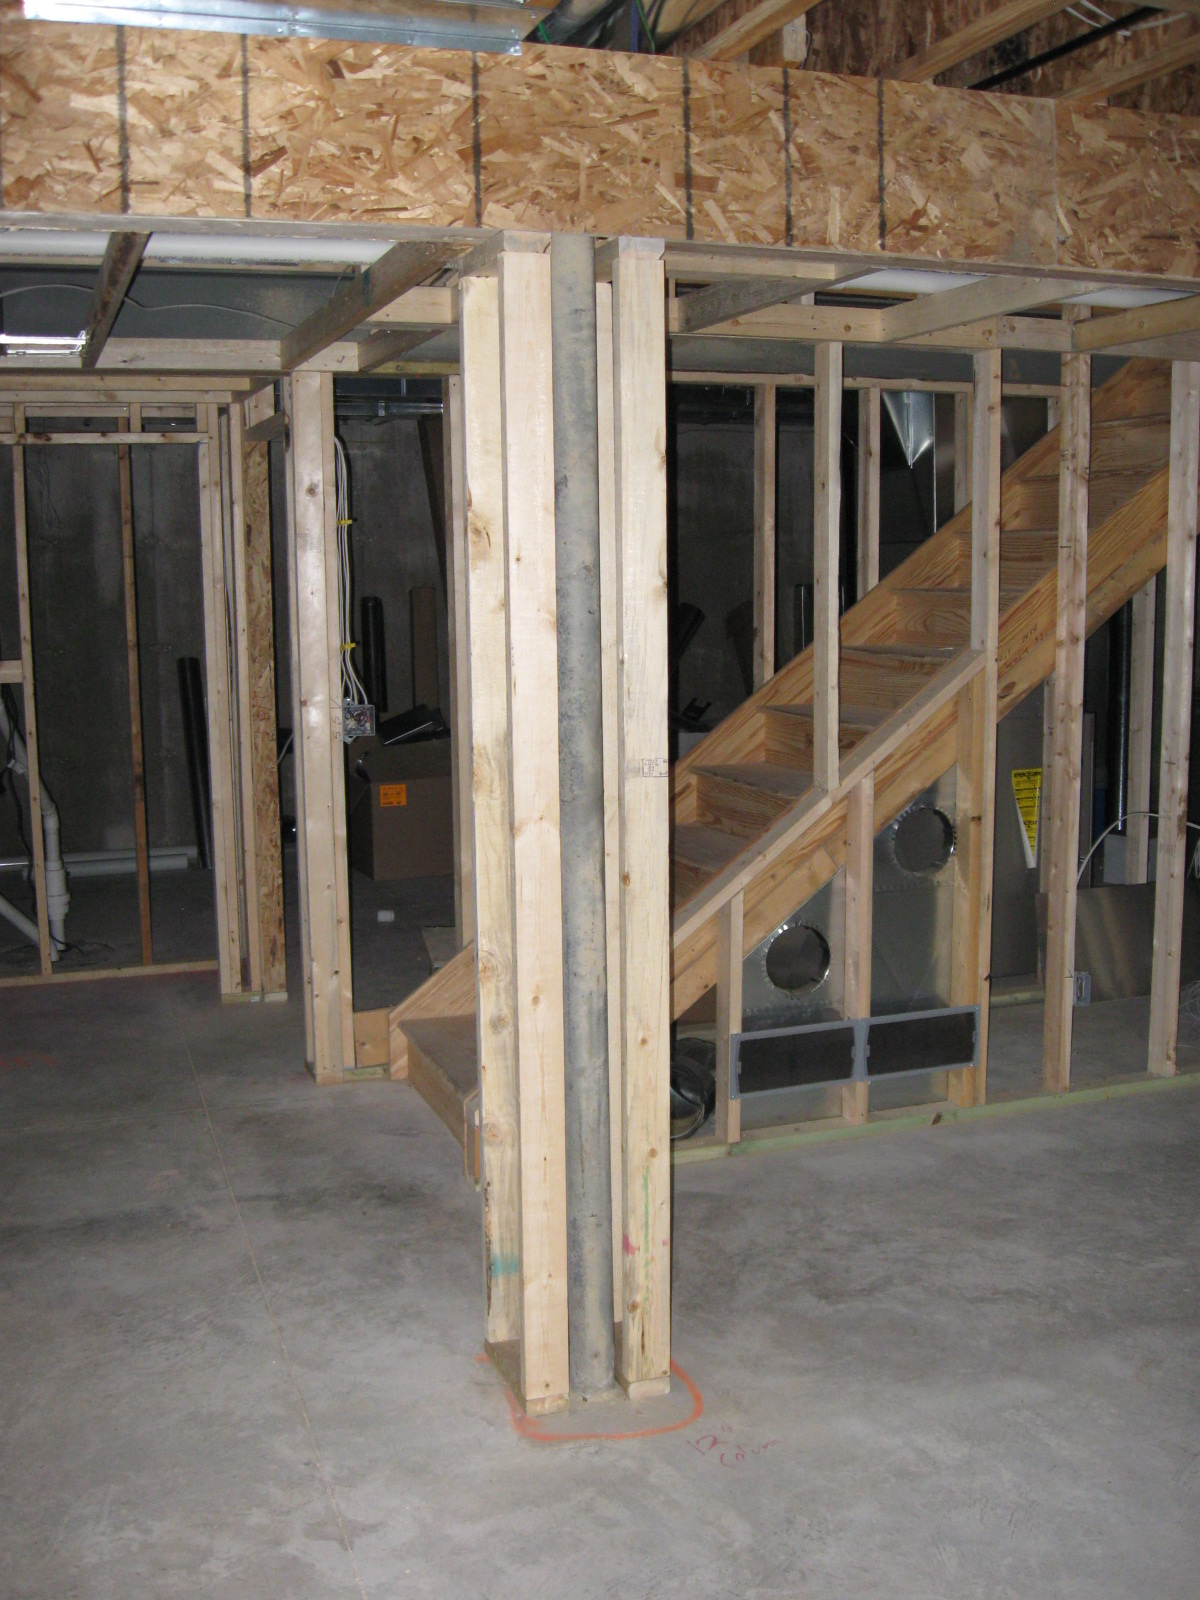 What does it cost to add living space armchair builder blog build renovate repair - Finish my basement ideas ...